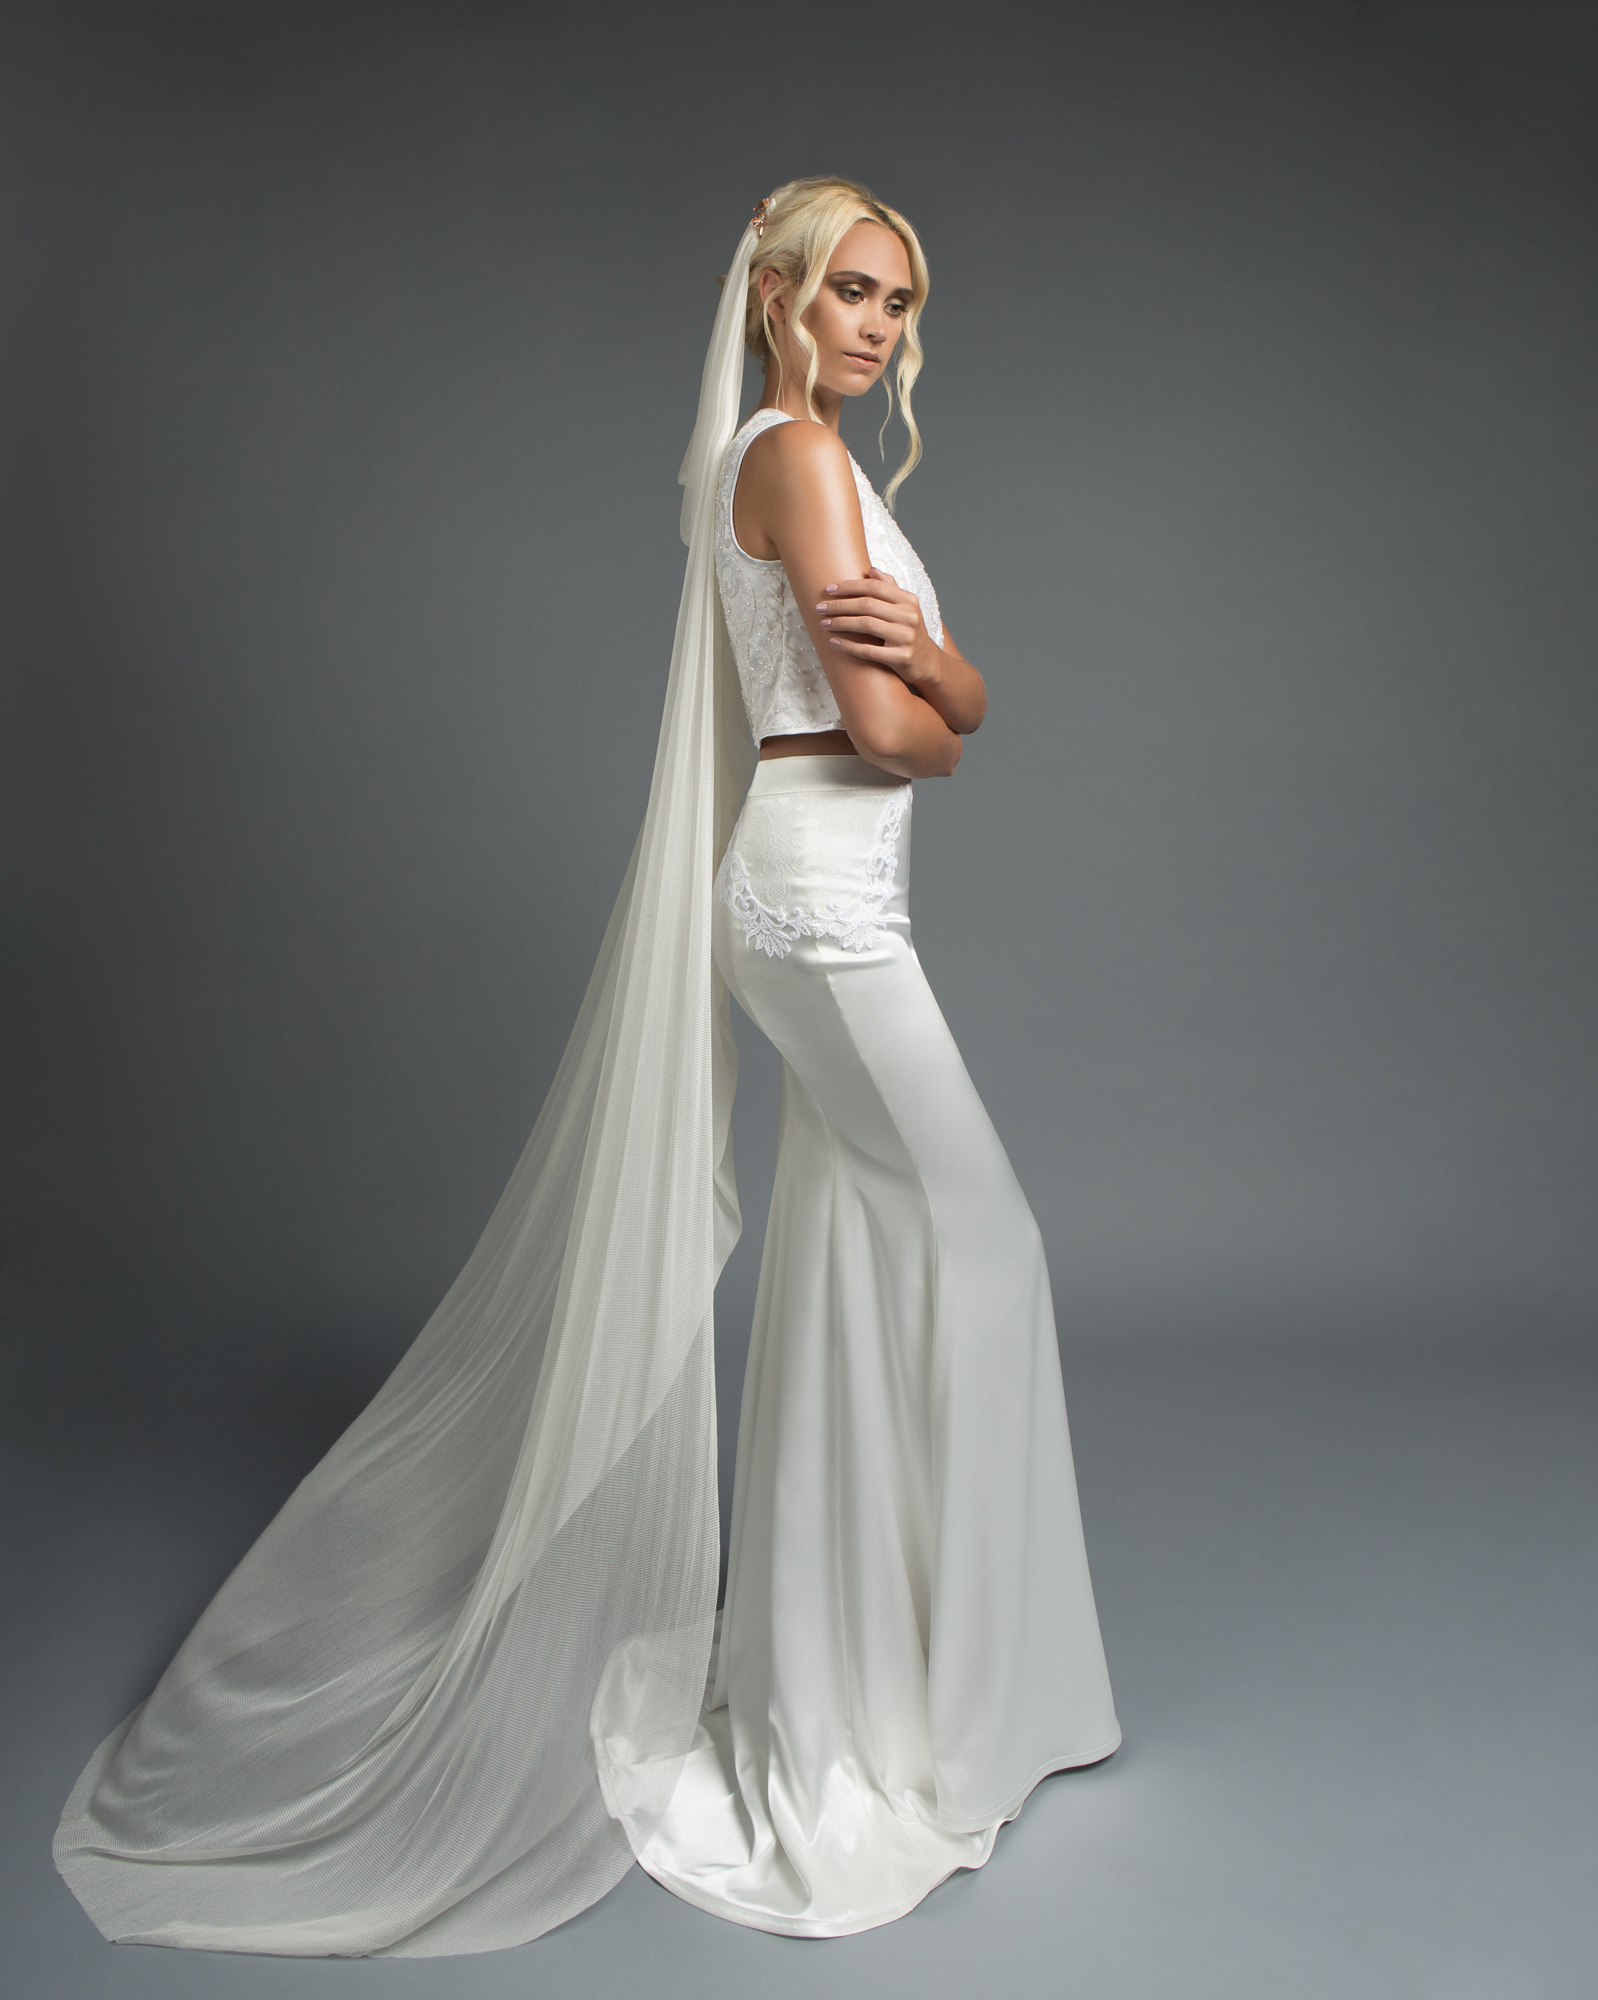 The Madison Gown from Victoria Spector Bridal Couture and Zoe Veil from Kata Banko Couture